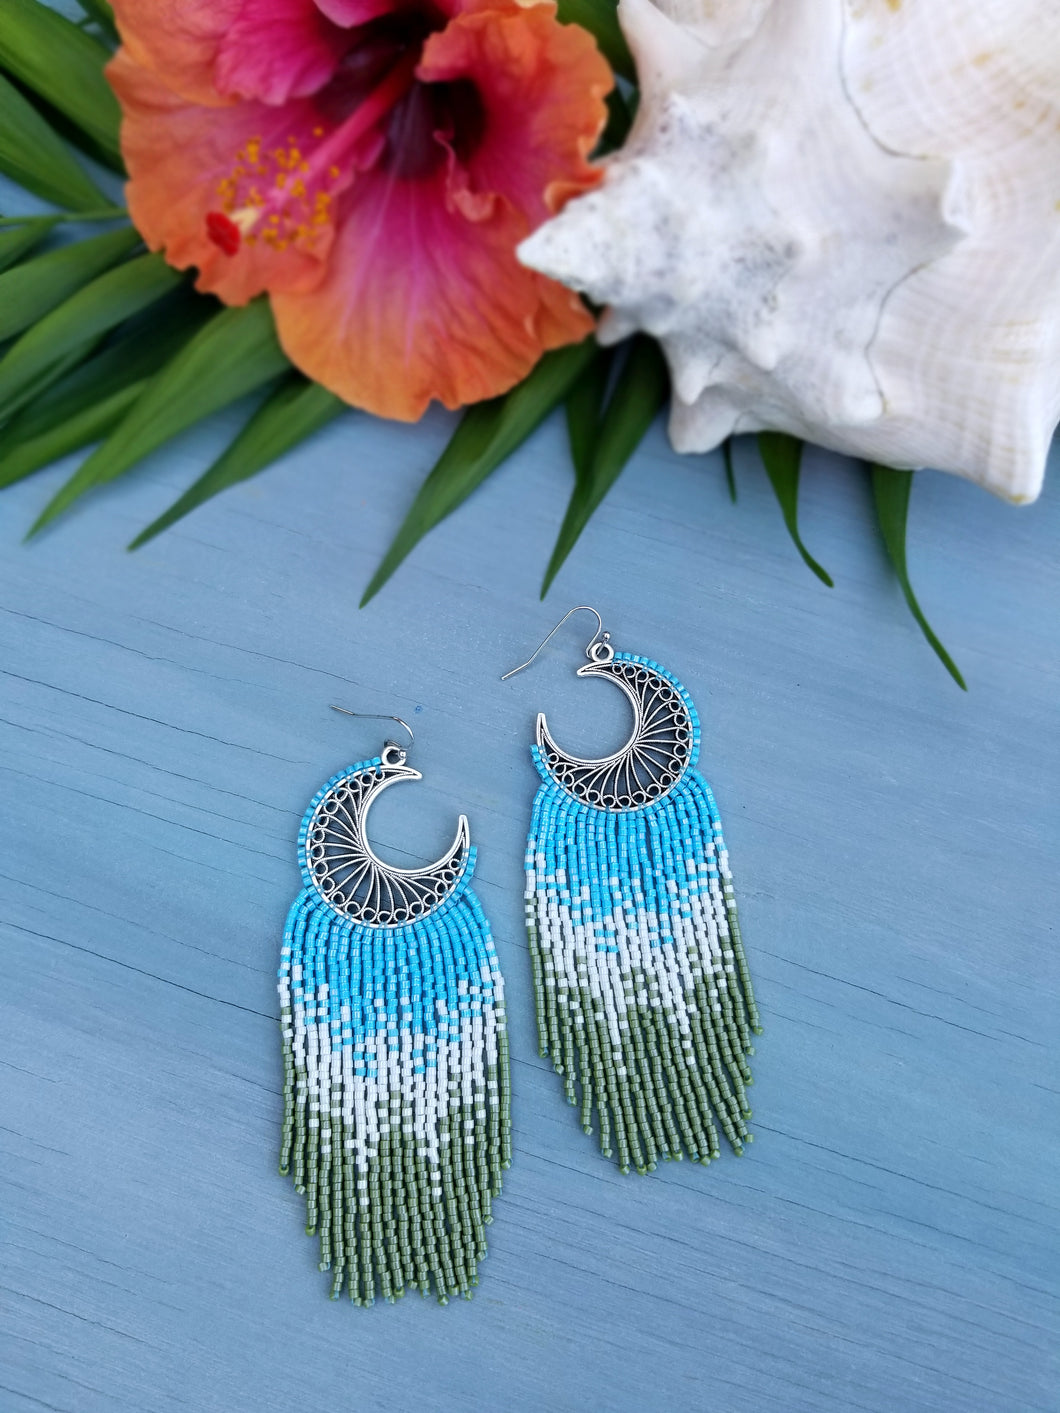 Paradise Island Crescent Moon Beaded Fringe Earrings